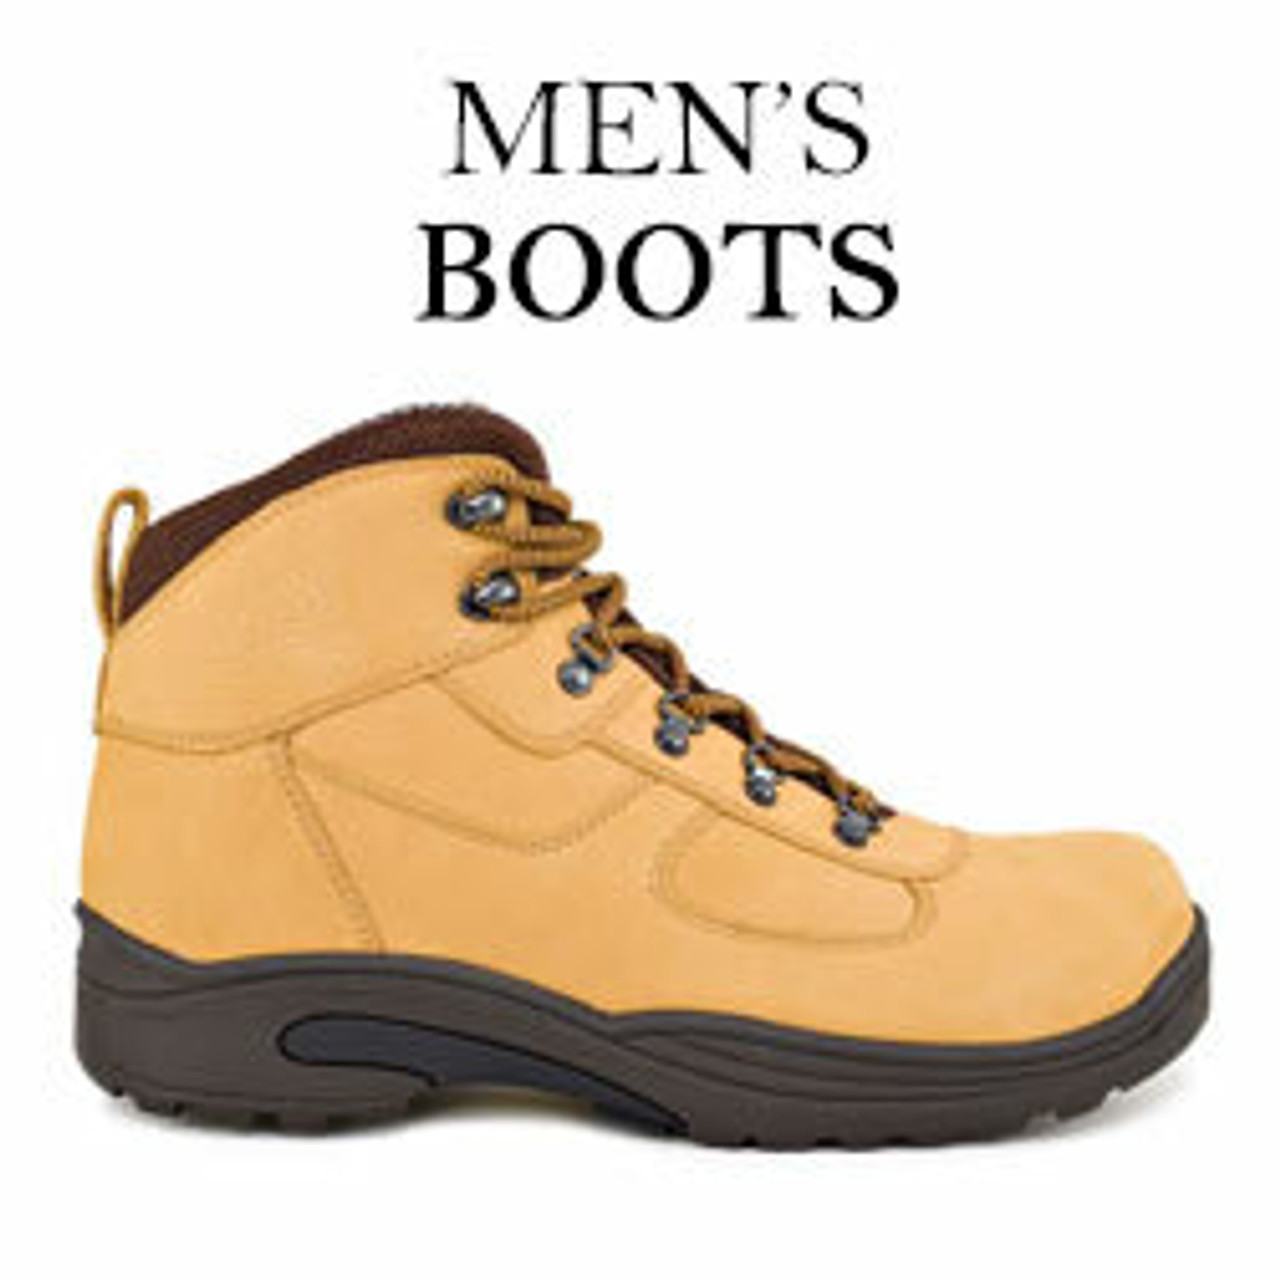 Orthopedic Boots For Men| Diabetic Boots